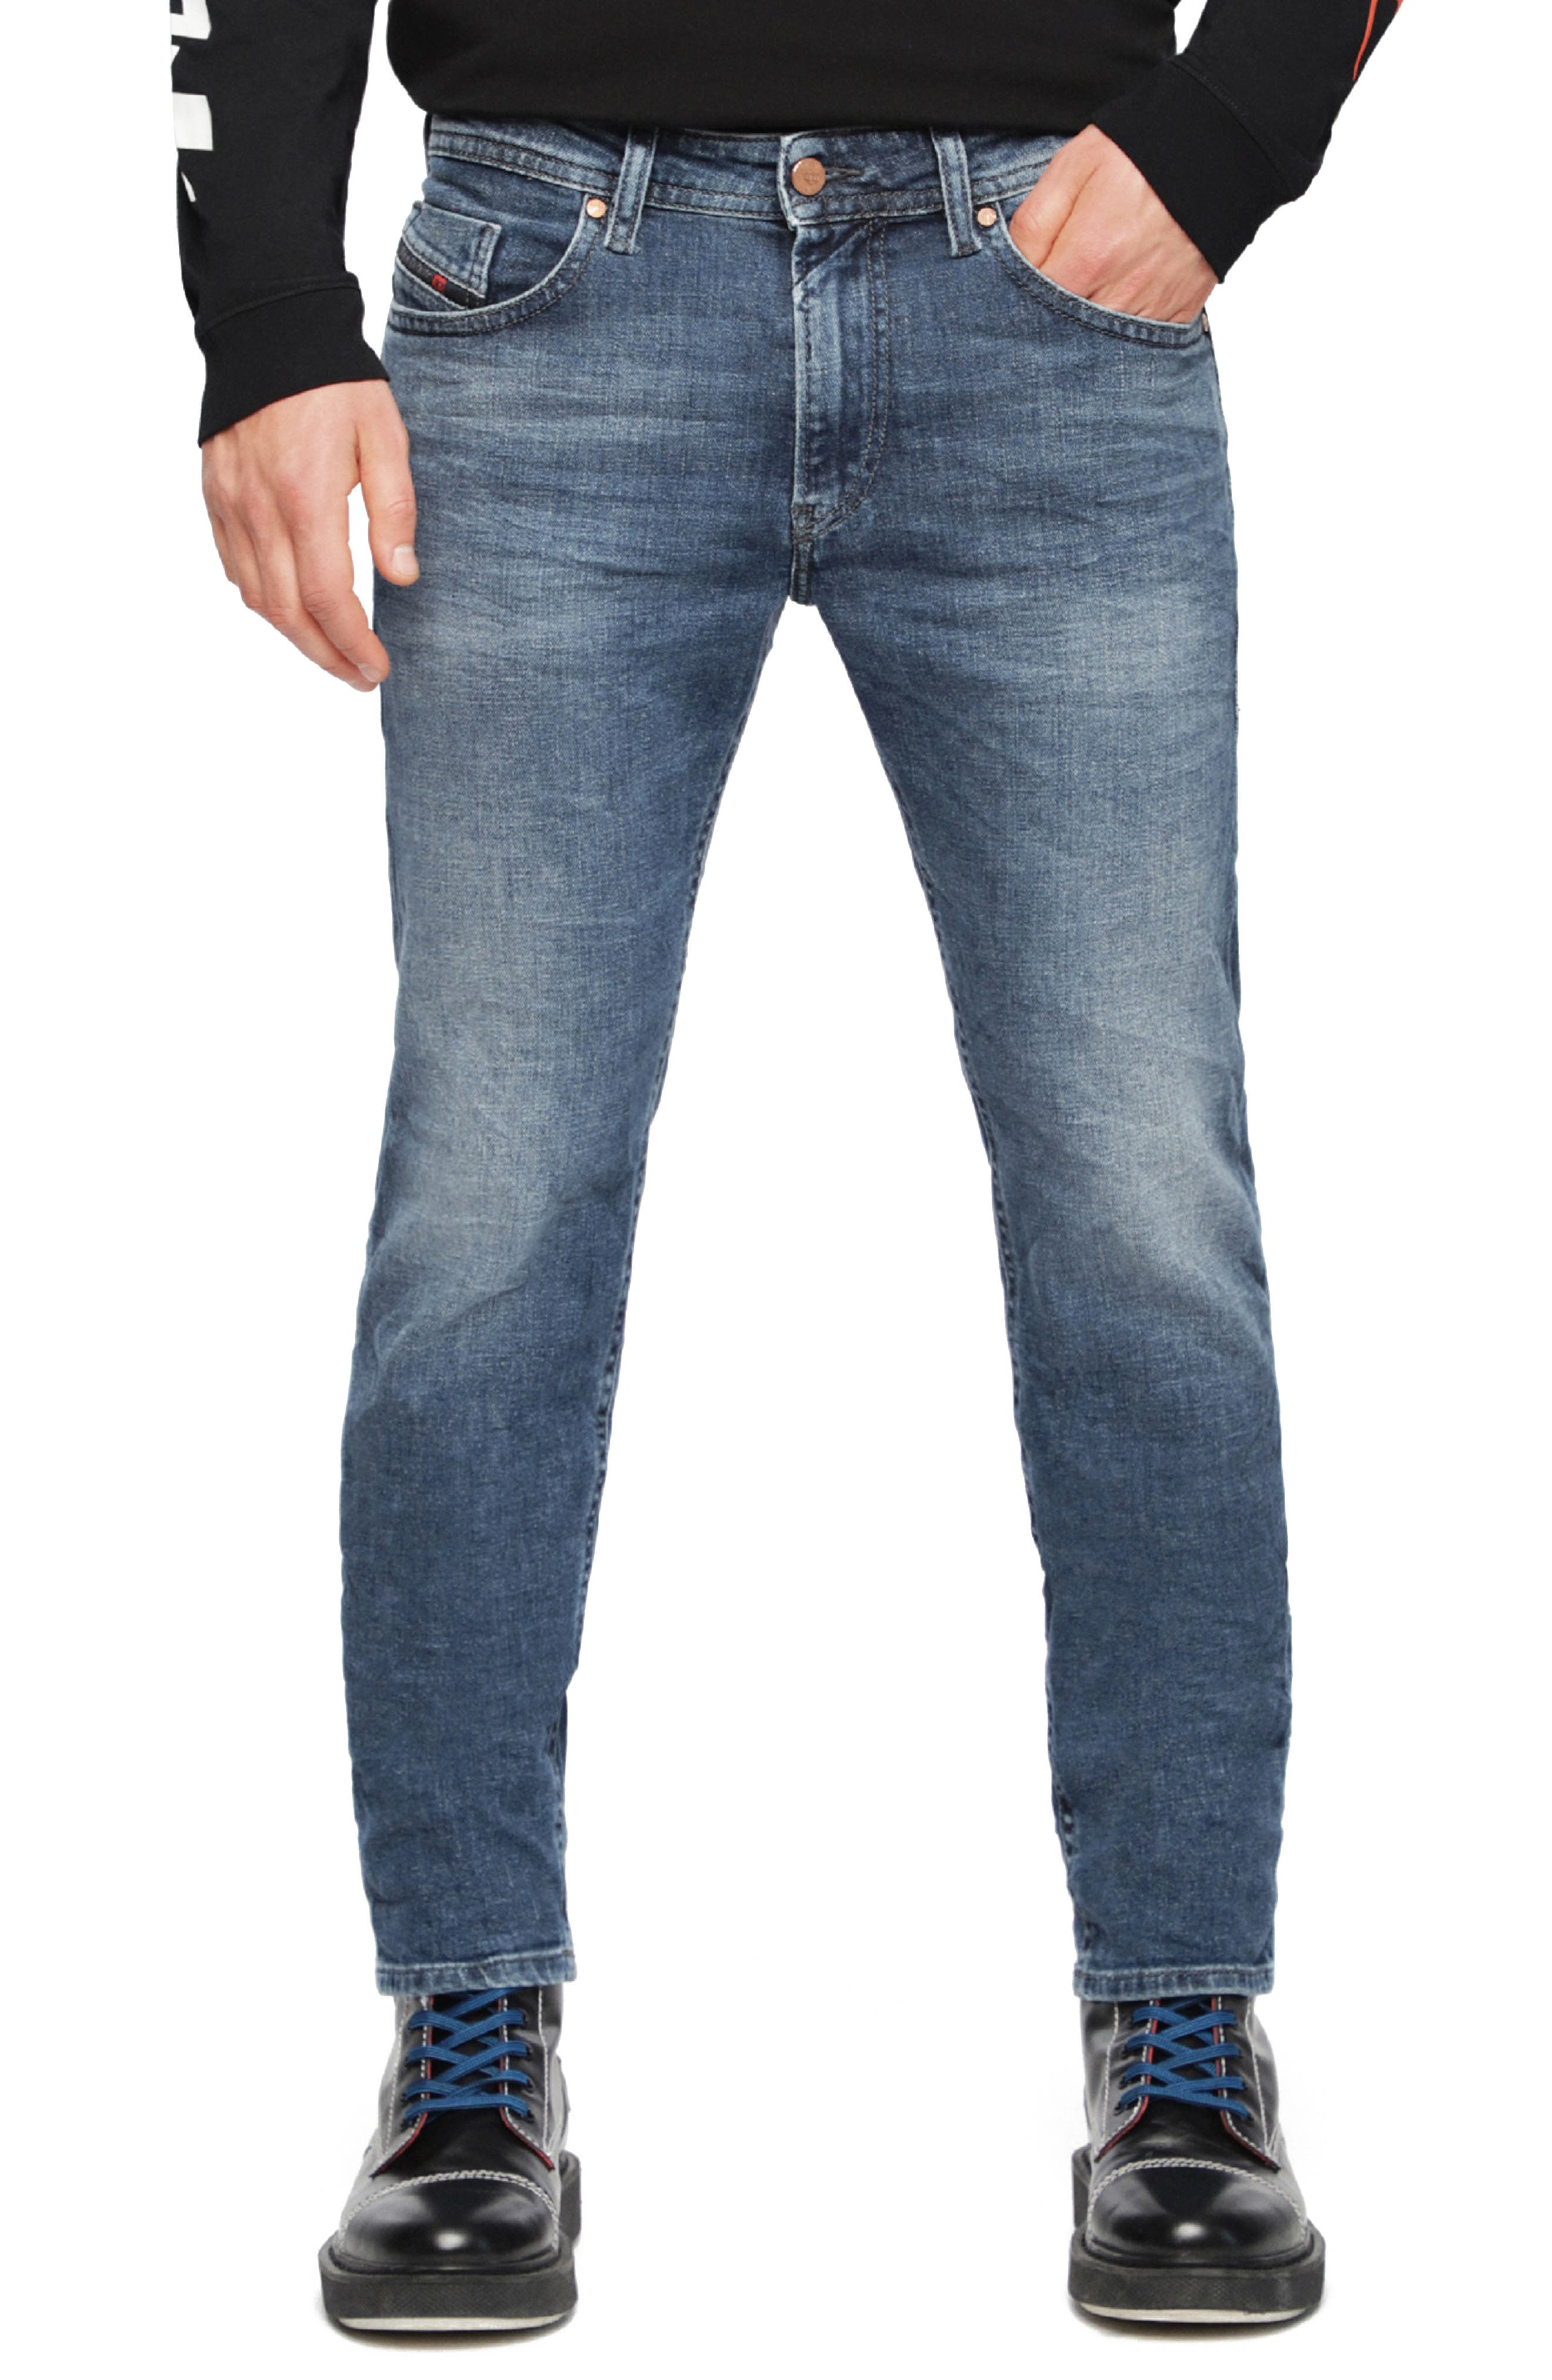 Thommer Slim Fit Jeans,                         Main,                         color, 084UH